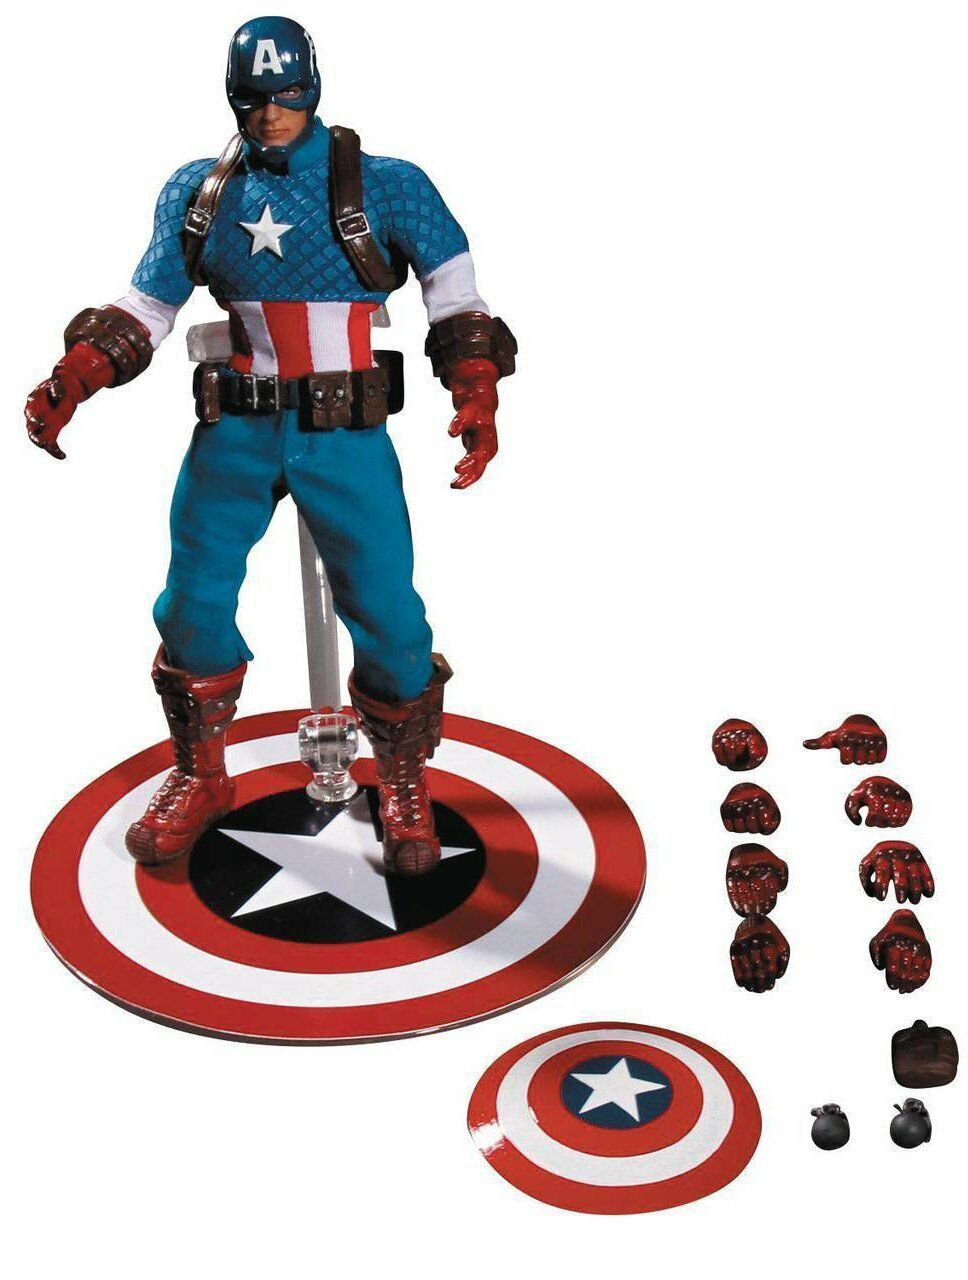 Captain America 1:12 Collective Action Figure